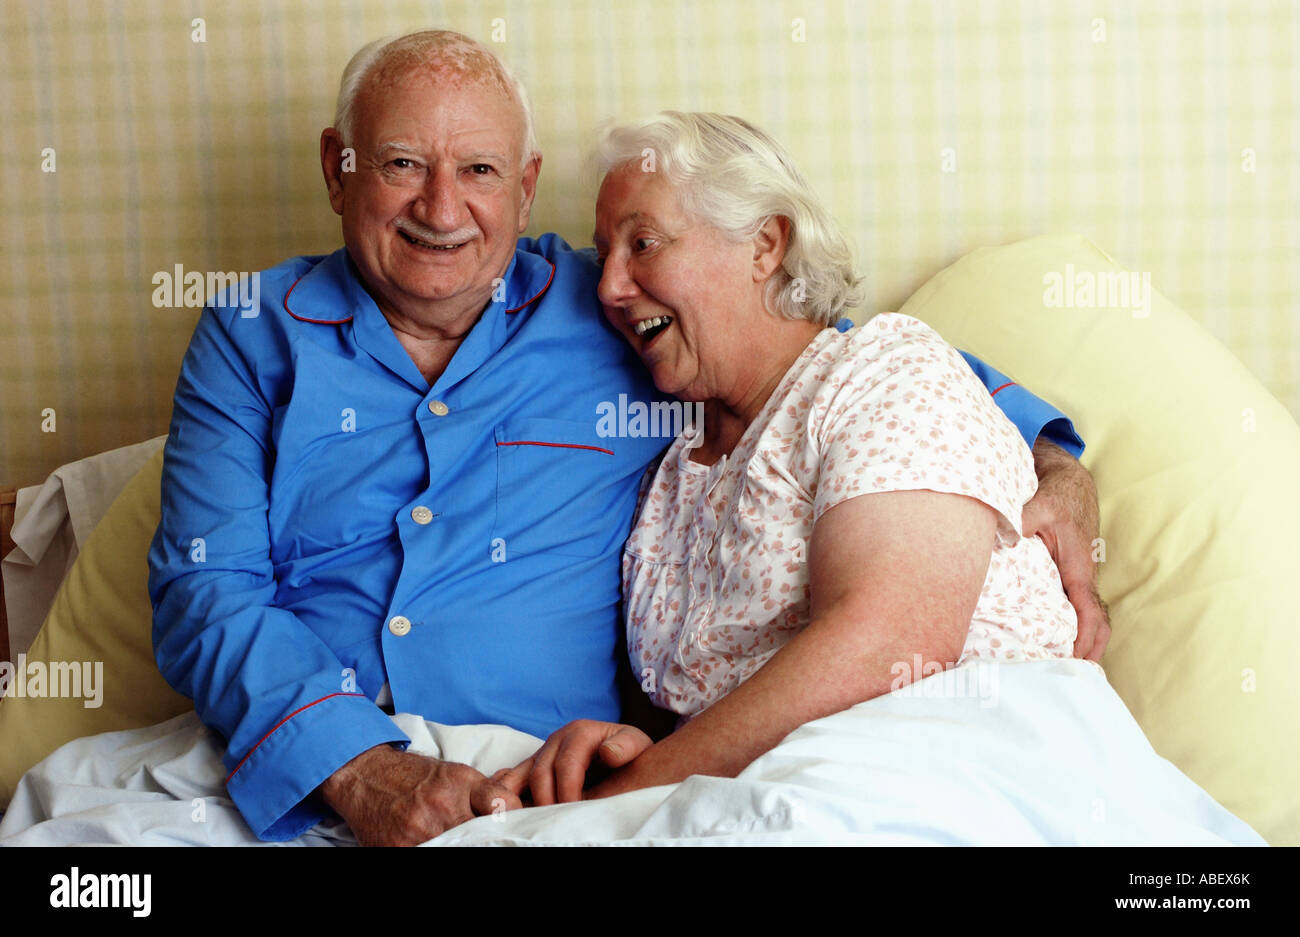 Senior couple smiling in bed - Stock Image